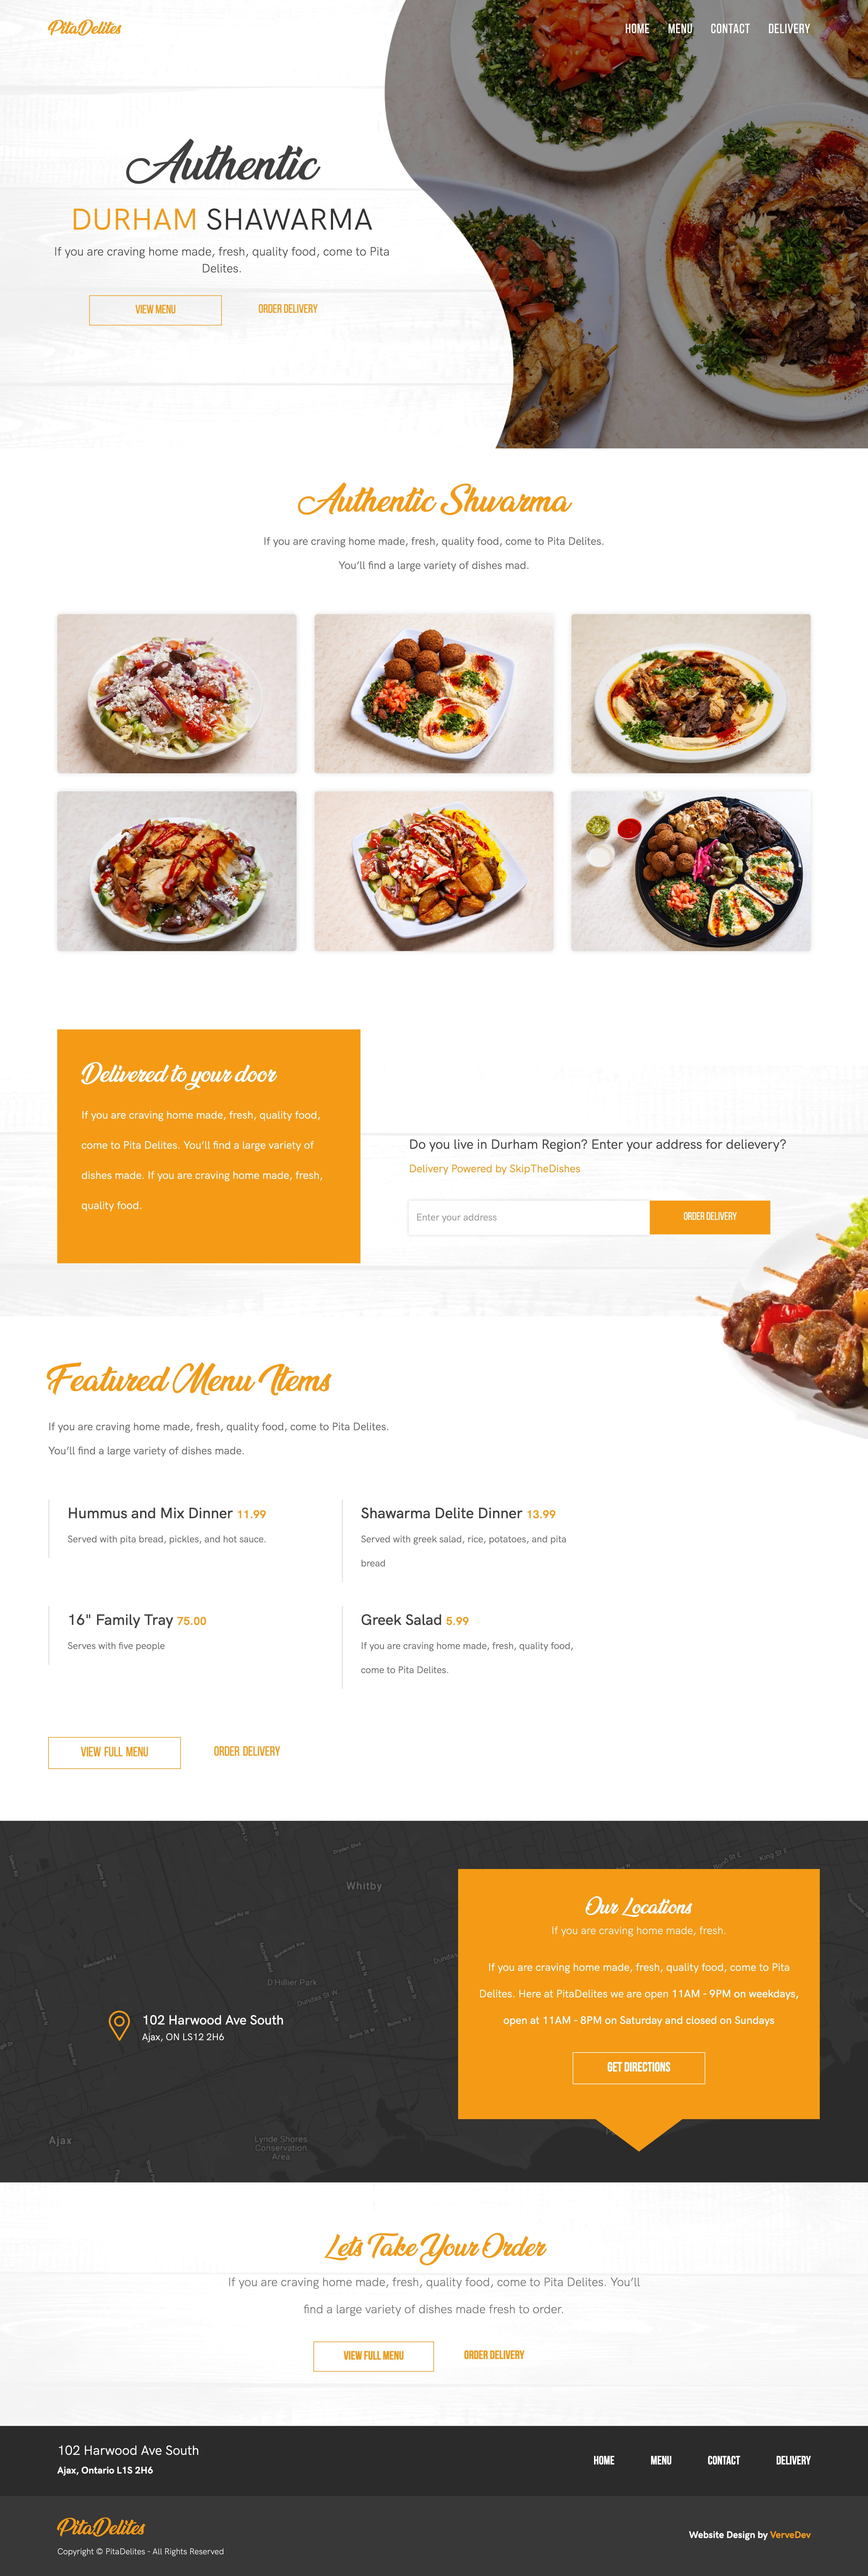 Mississauga-website-design-portfolio-1